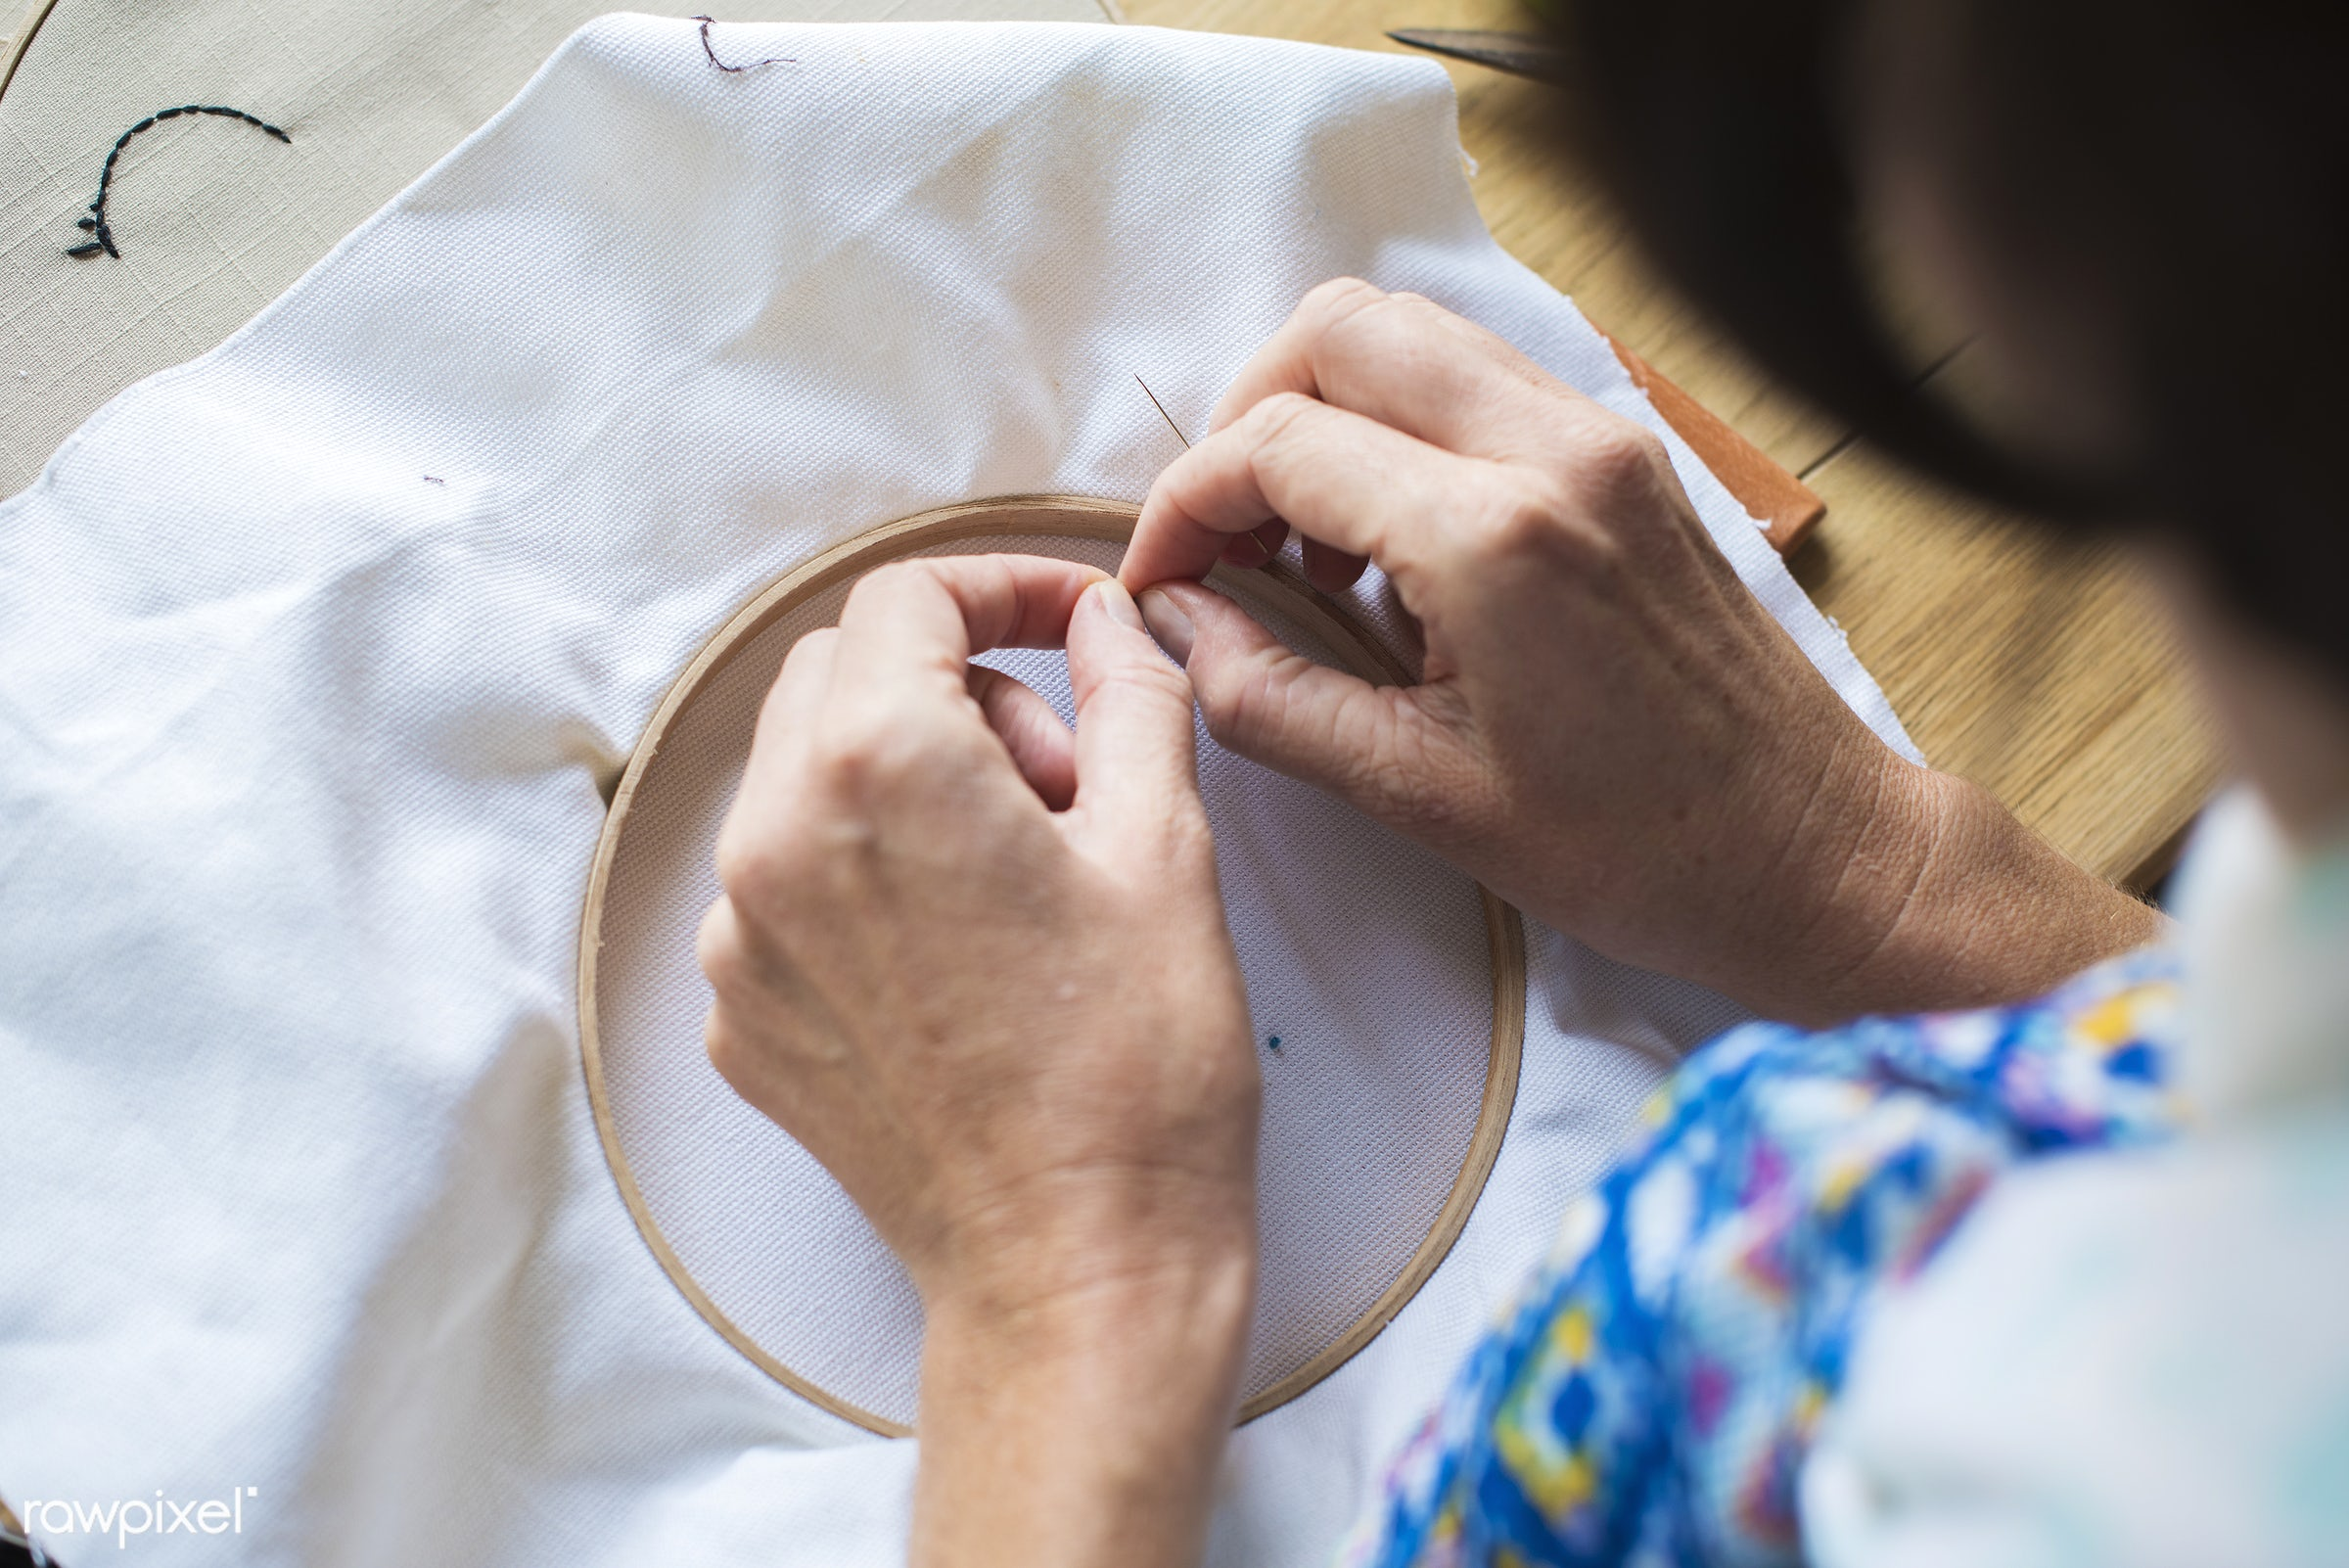 workspace, handicraft, workplace, stitching, equipment, tools, cloth, hands, thread, lifestyle, making, embroidery hoop,...